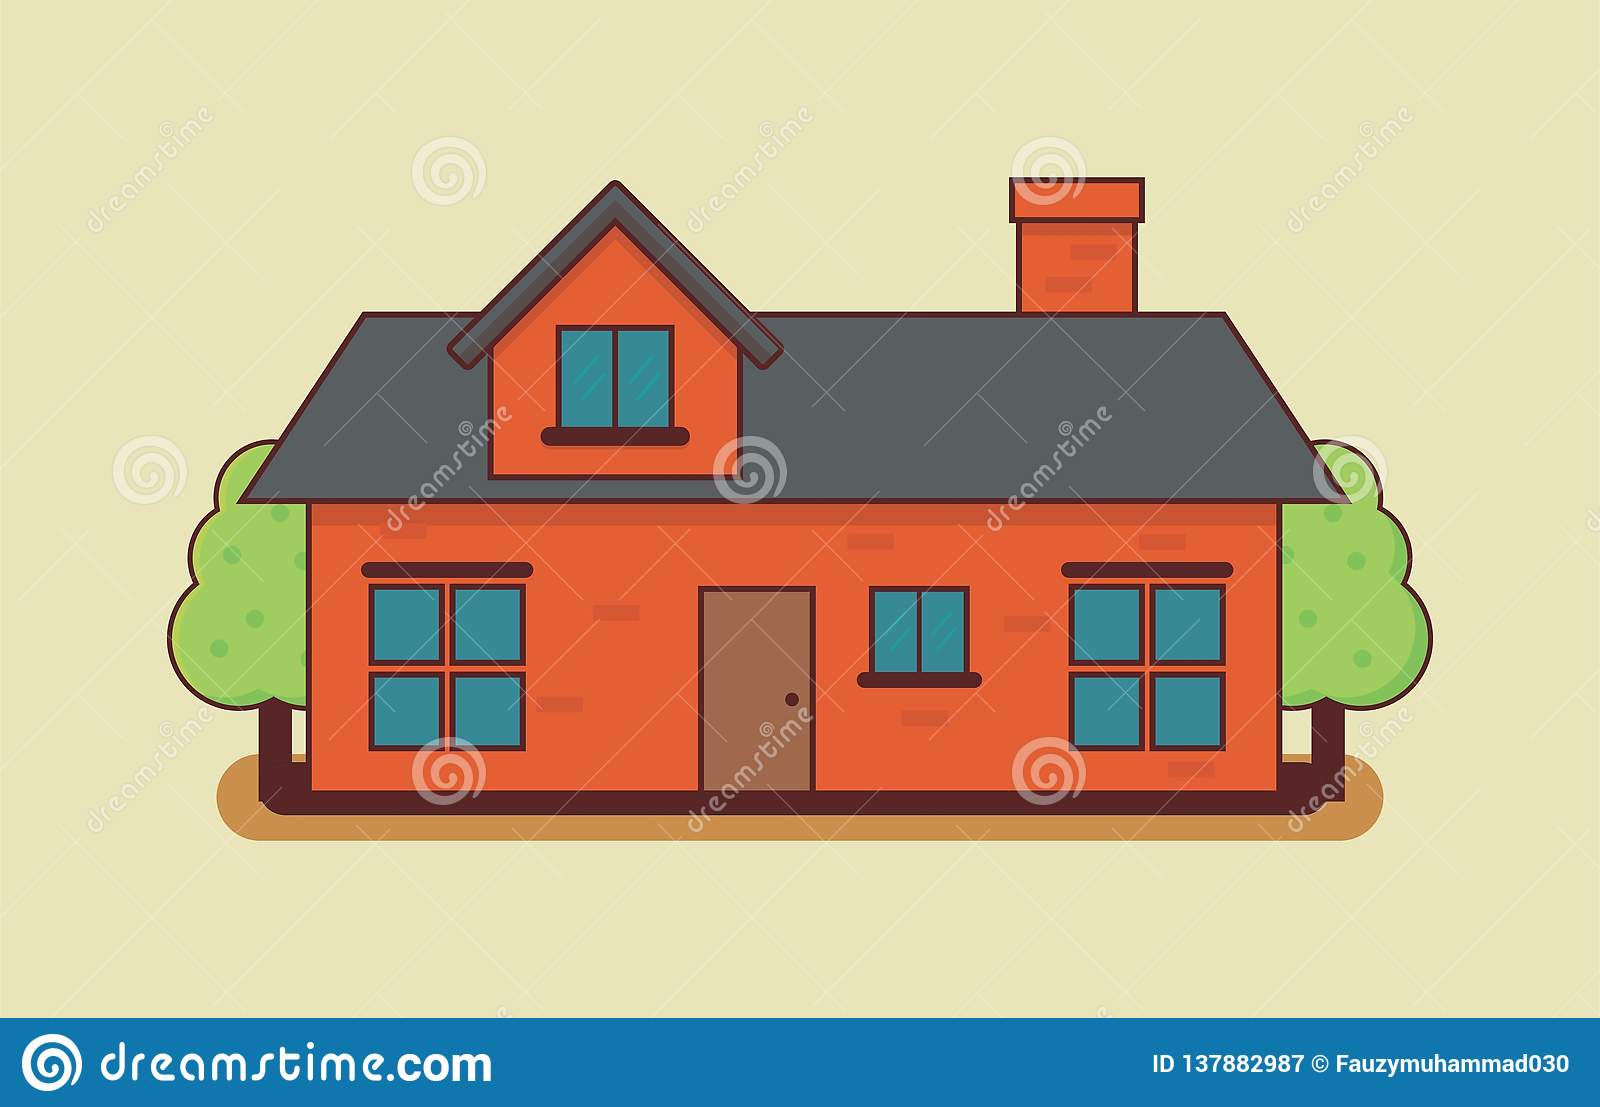 House Vector Illustration On Isolated Background Stock